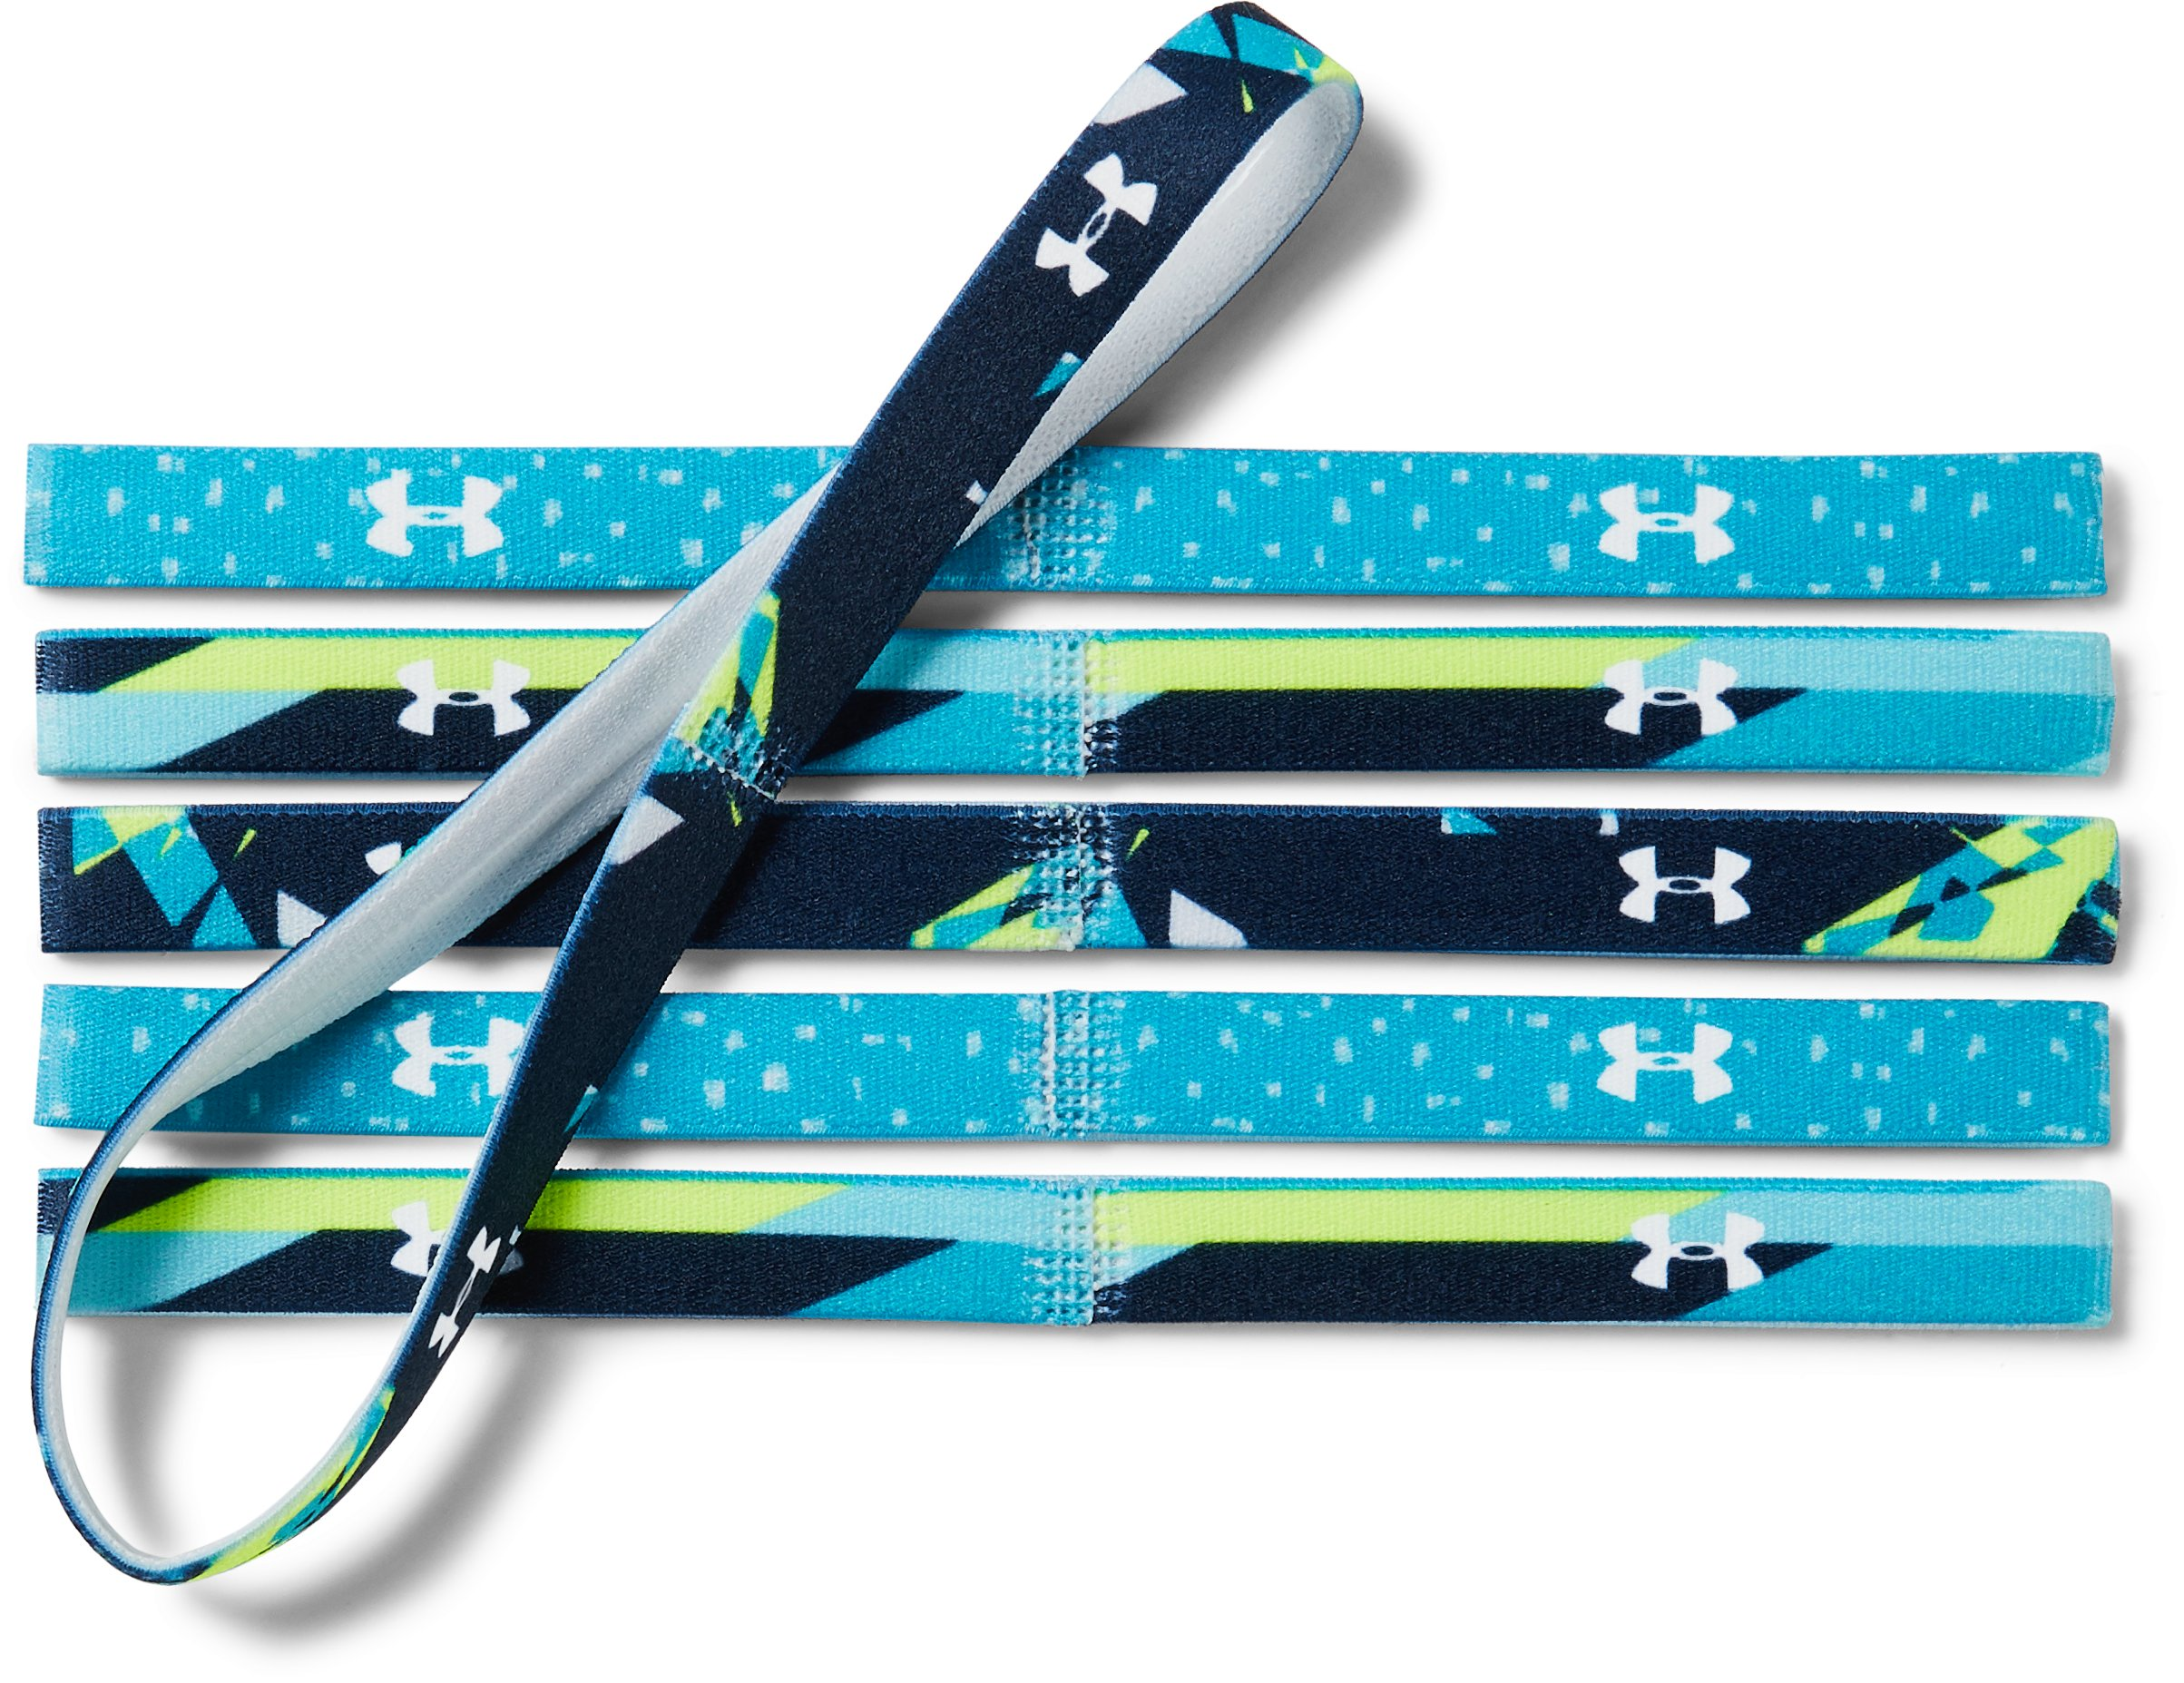 academy headbands Girls' UA Graphic Headbands - 6 Pack Very comfy and don't make her feet hot [This review was collected as part of a promotion.]...Have bought before and they are great....Great features